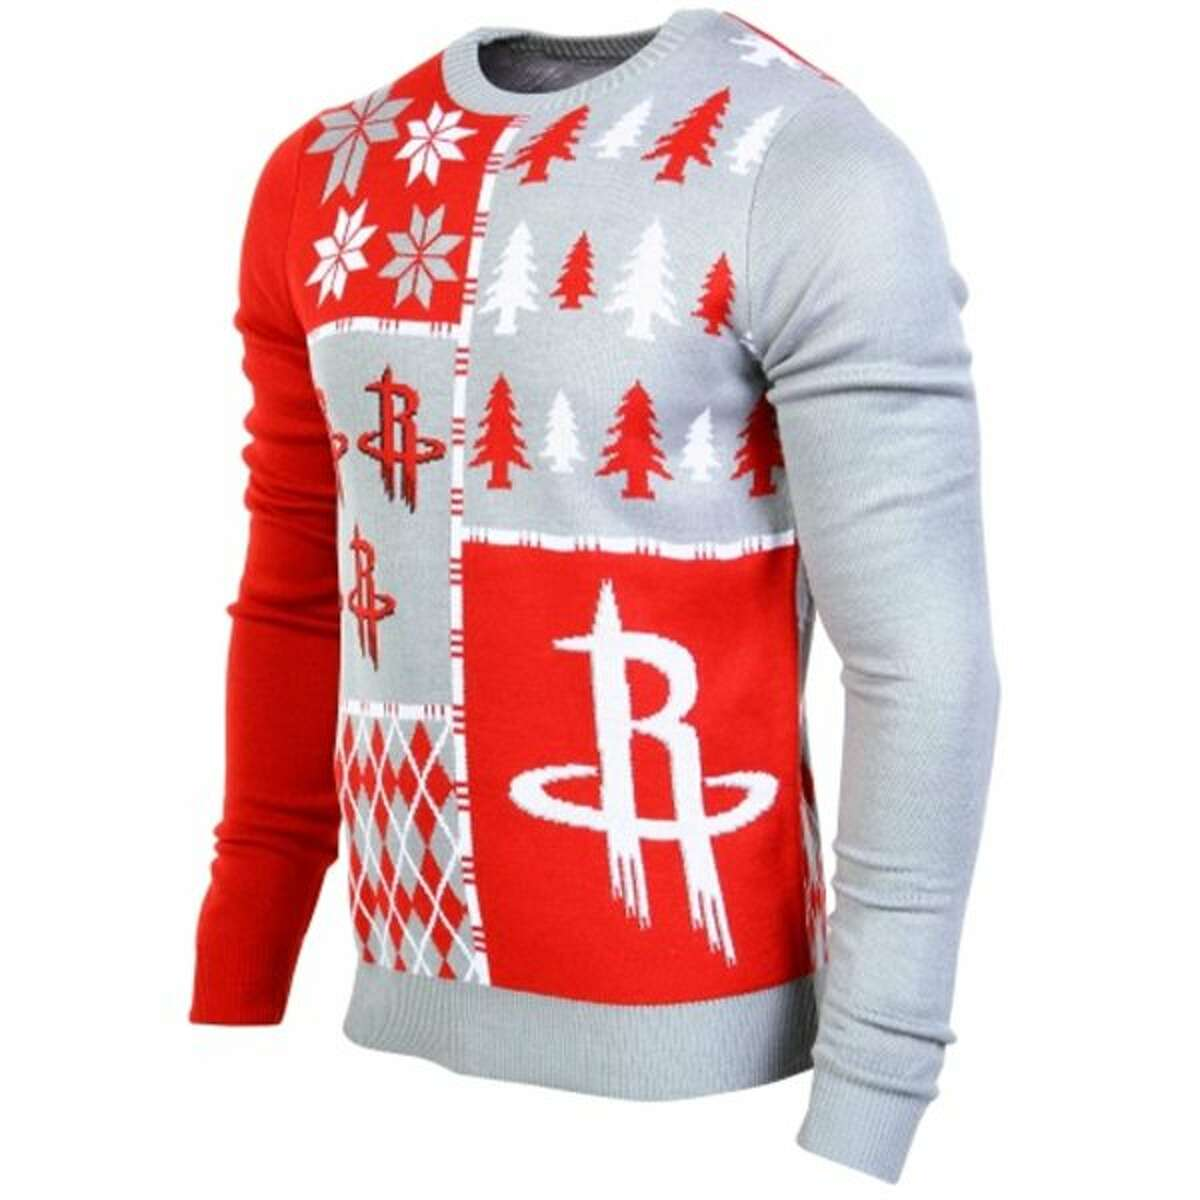 New this year and just in time for the holidays is the Houston Rockets Ugly Sweater, available exclusively on Fanatics.com.